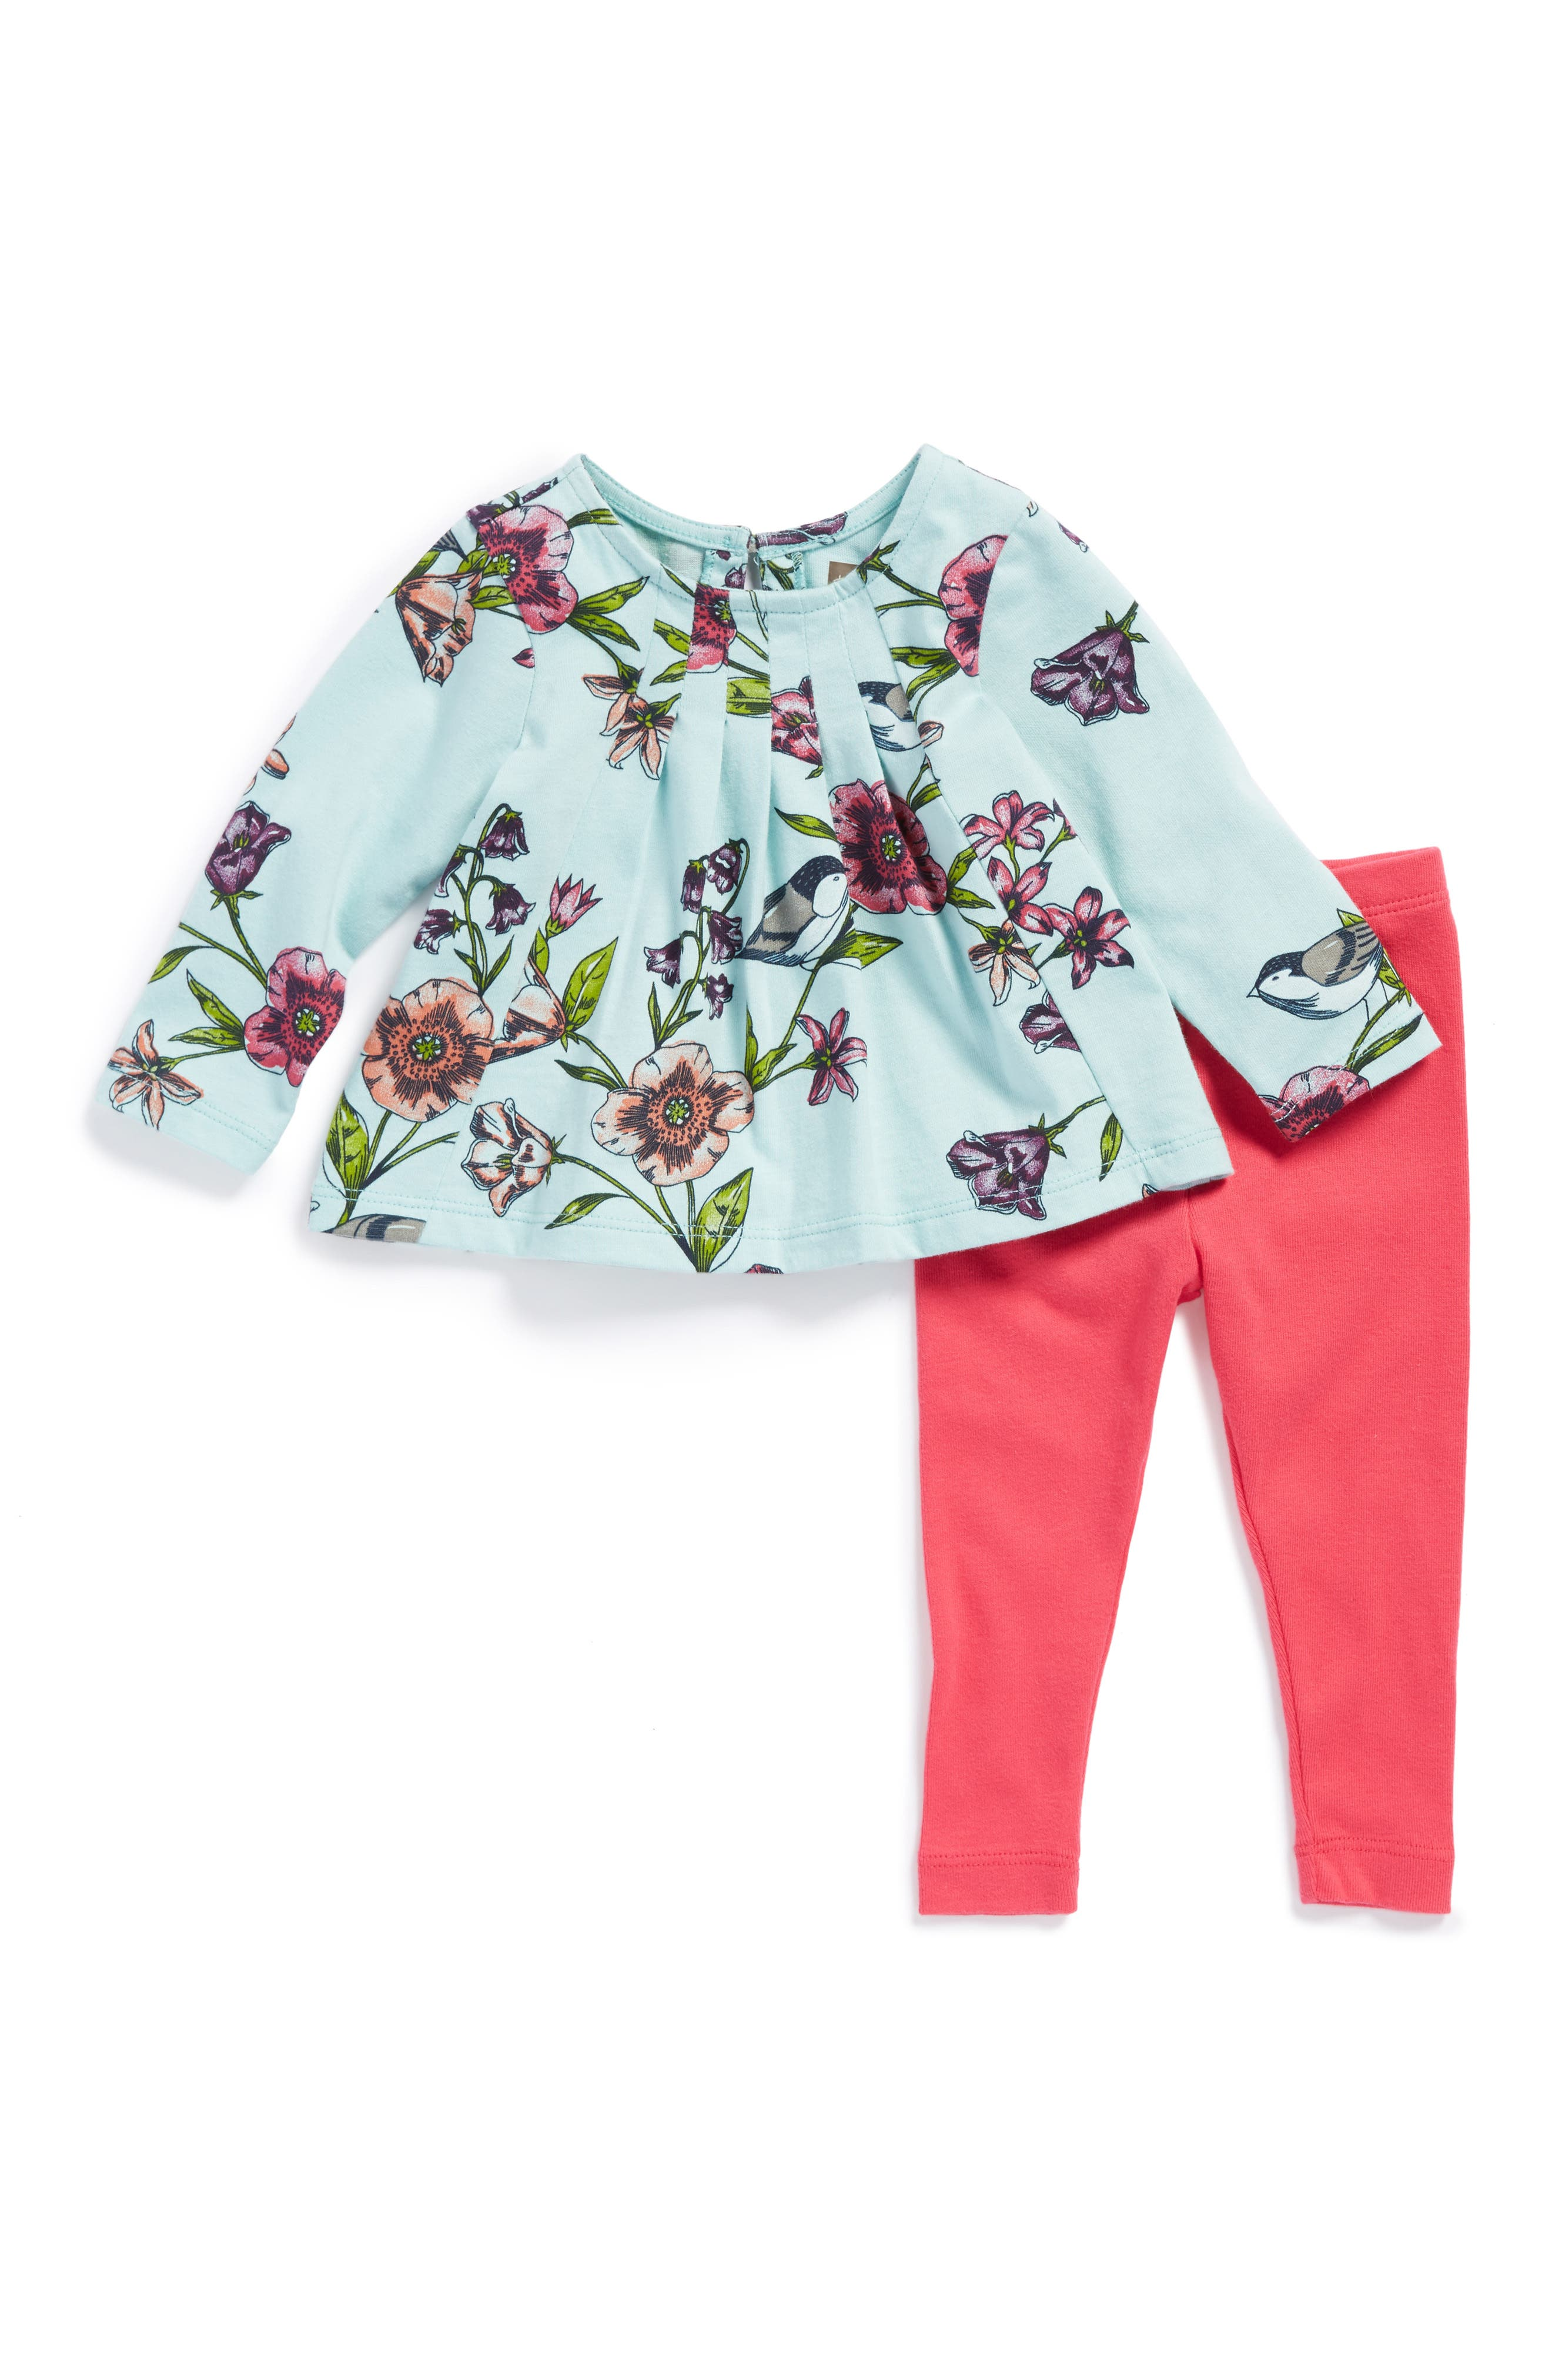 Main Image - Tea Collection Glenna Print Trapeze Top & Leggings Set (Baby Girls)